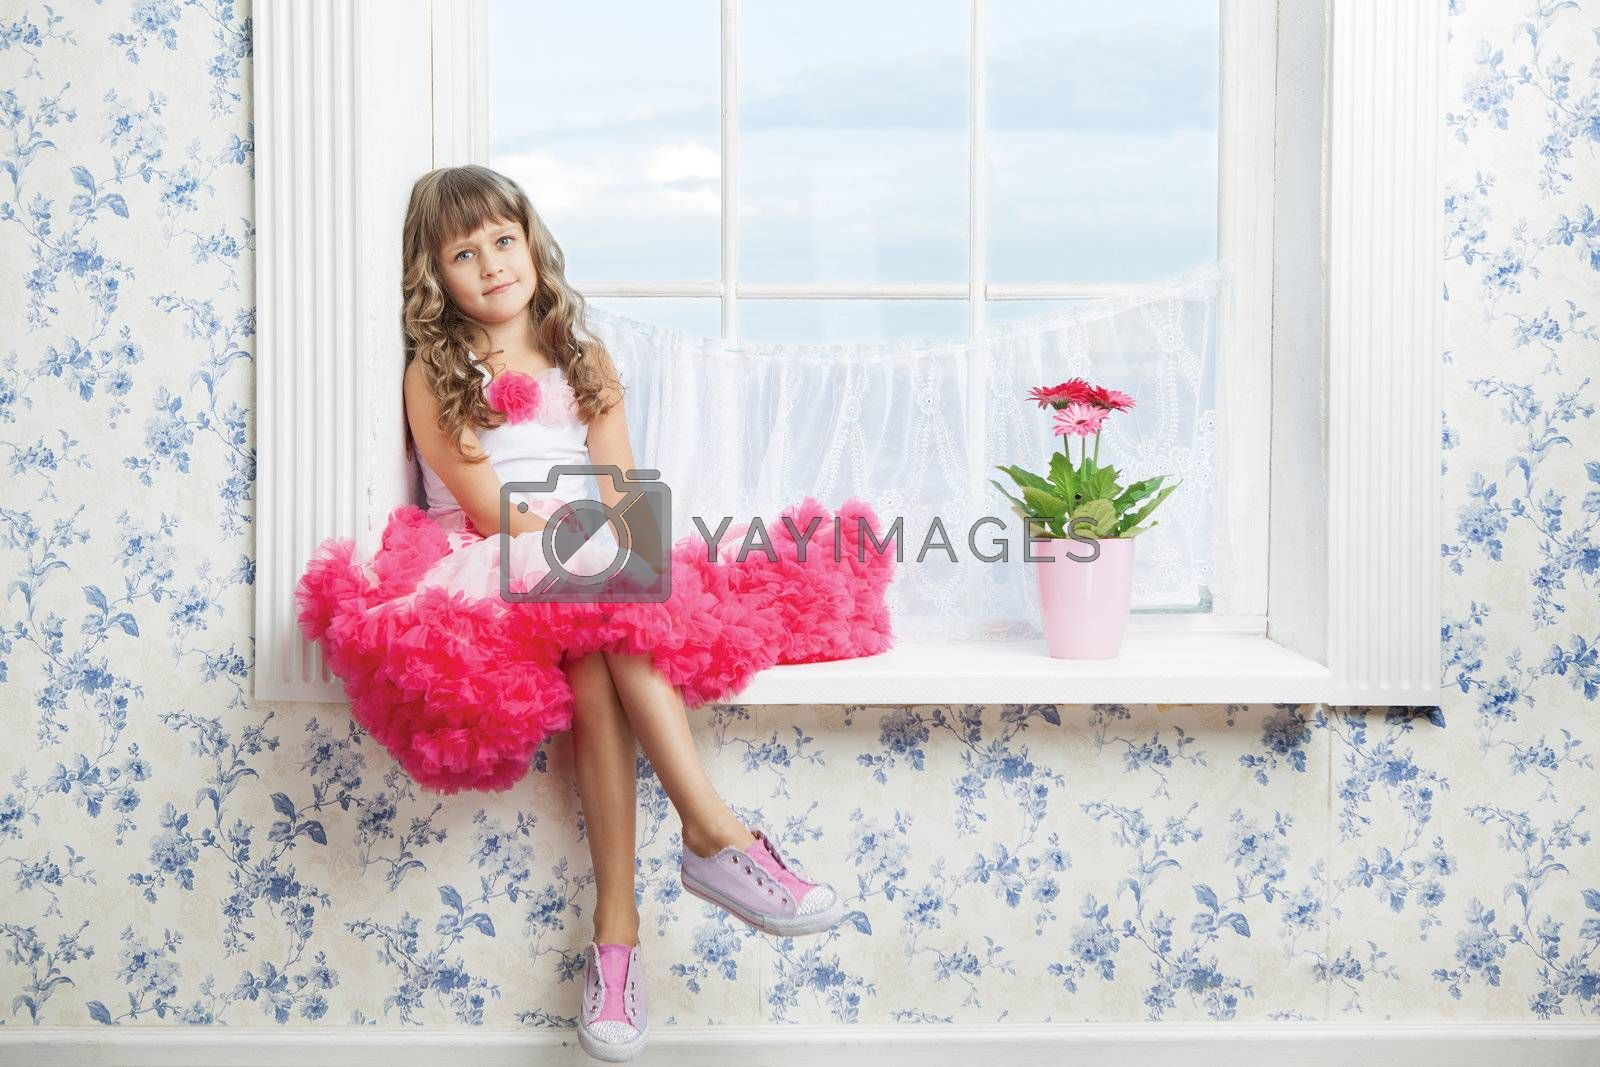 Romantic dreaming young girl dressed luxuriant wavy ball dress with frill sitting on white windowsill inside room near fresh natural flower in flowerpot